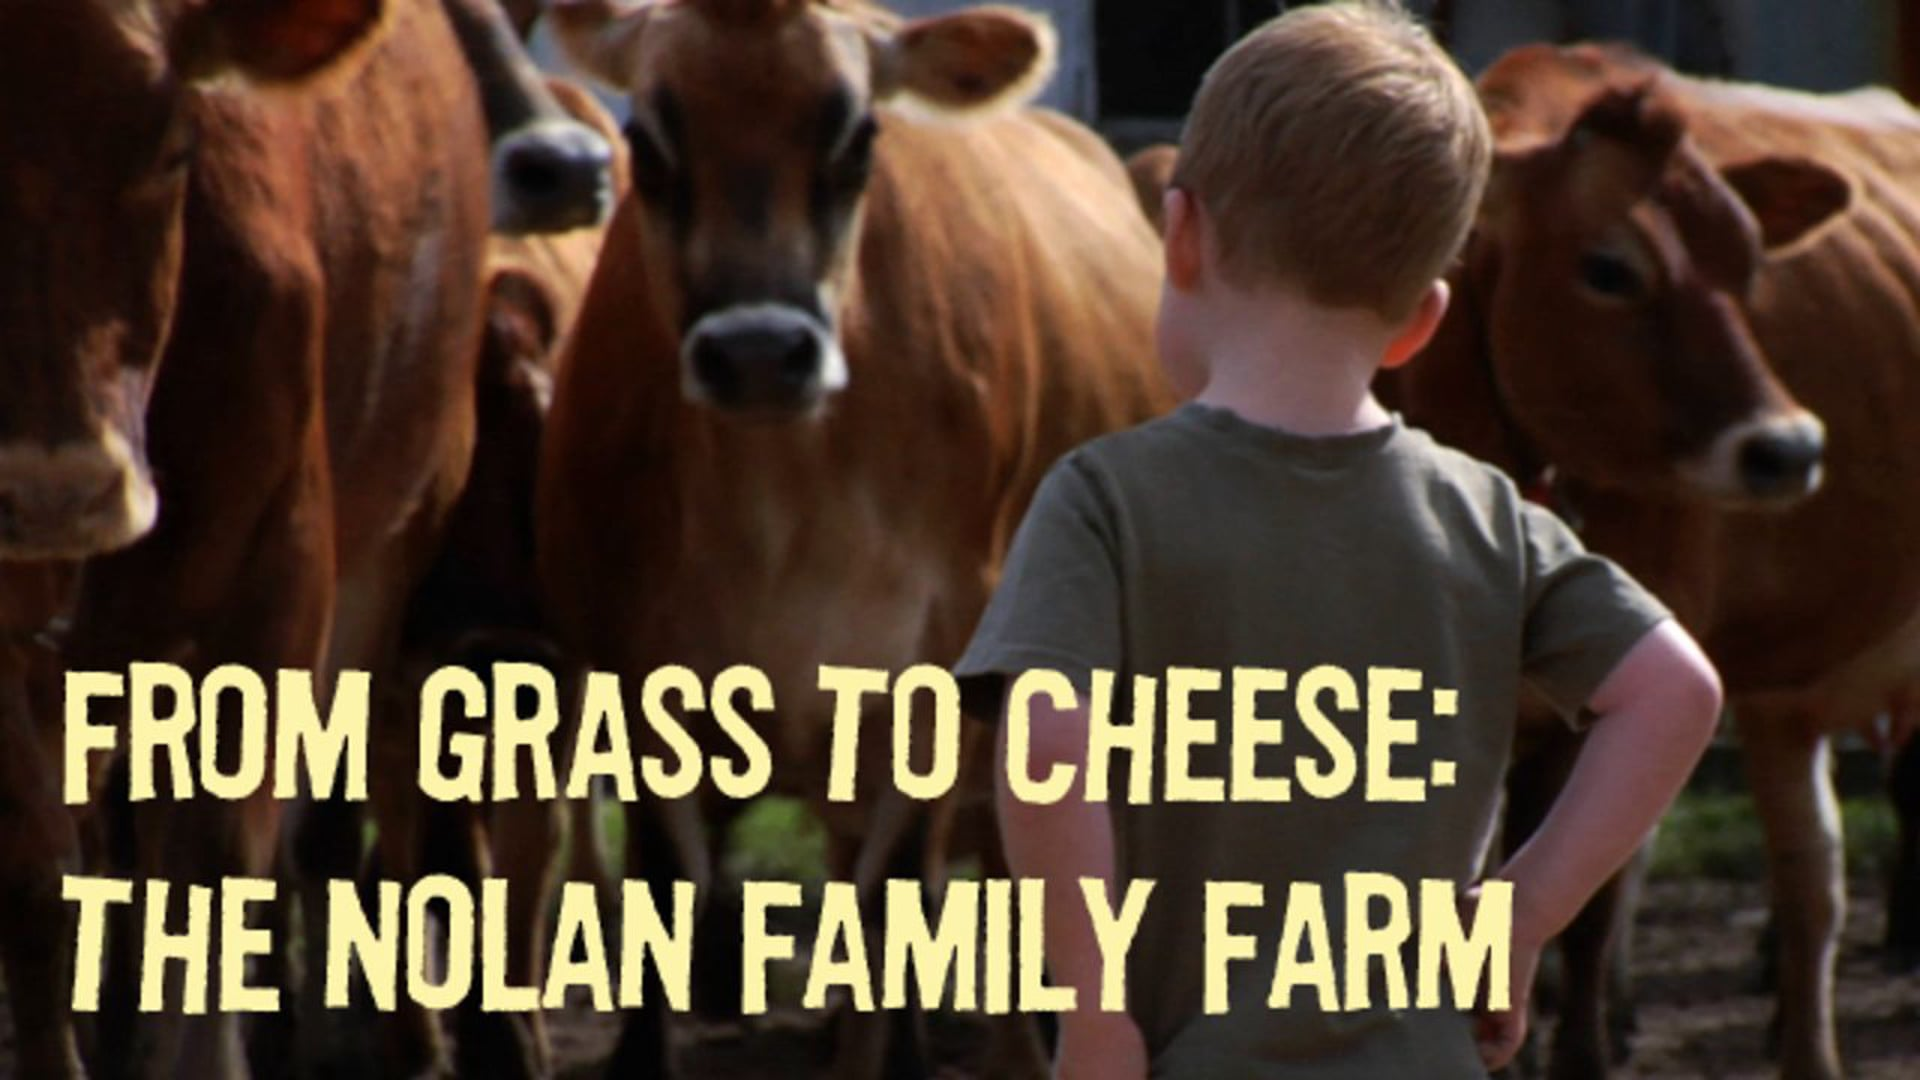 From Grass to Cheese: The Nolan Family Farm